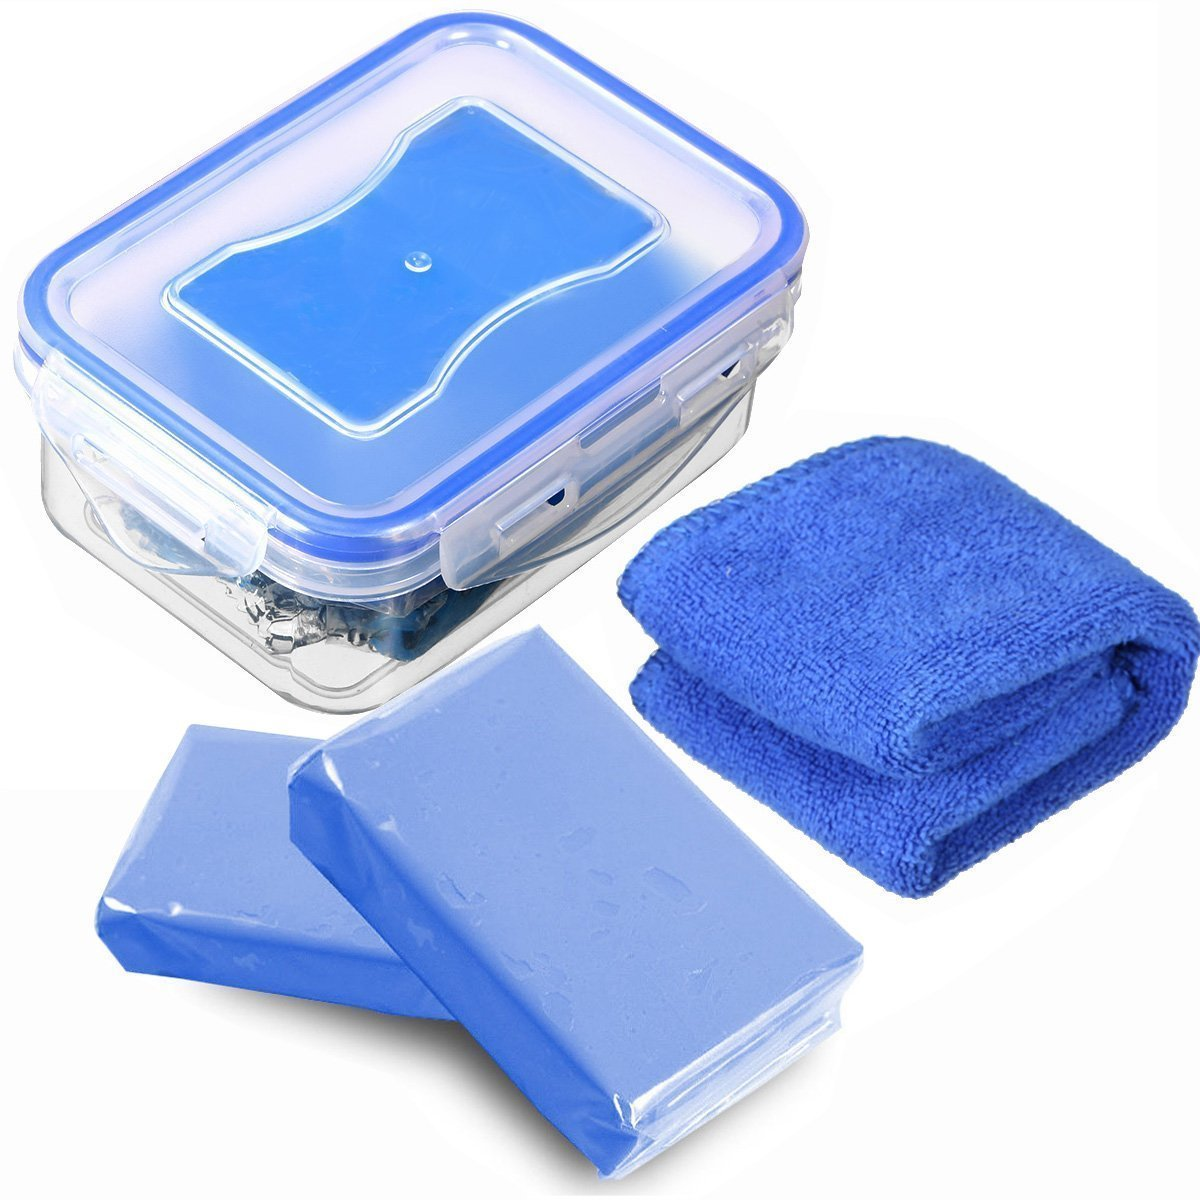 MATCC Car Clay Bar 2Pack x180g Magic Clay Auto Detailing Clay Blue in Sealed Storage Box with Microfiber Cleaning Cloth